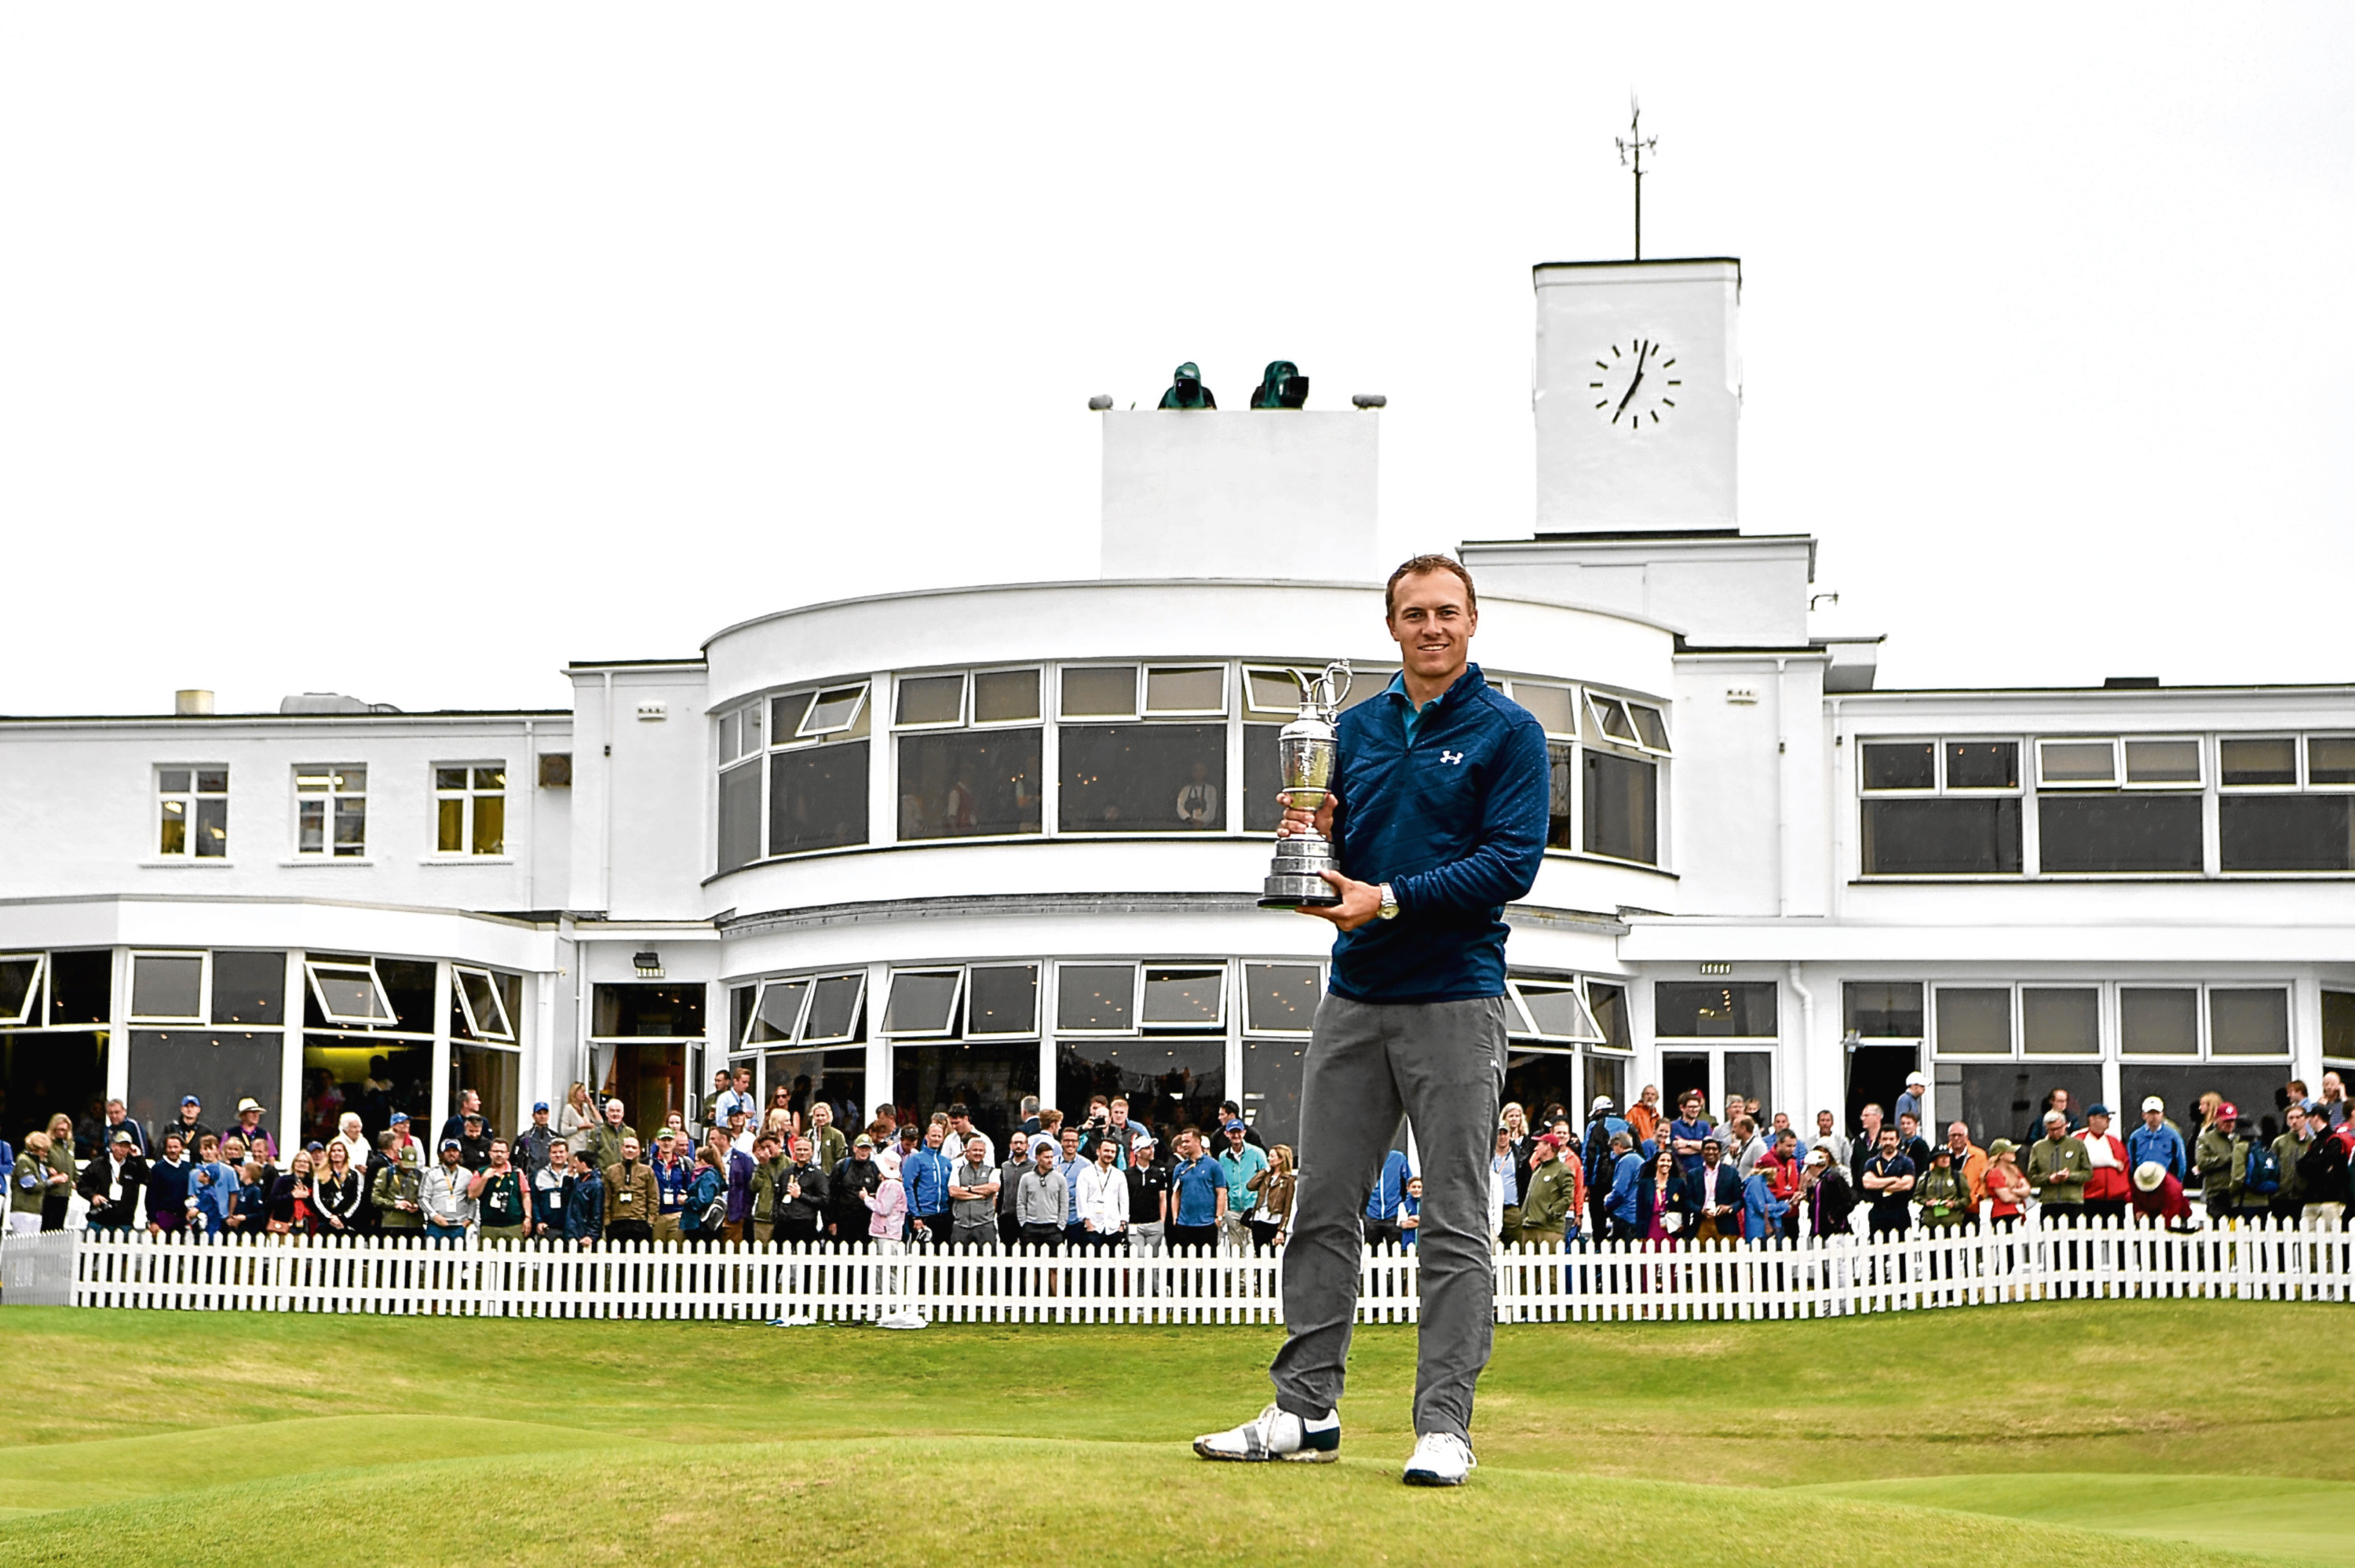 Jordan Spieth with the Claret Jug in front of Royal Birkdale's famous art deco clubhouse.